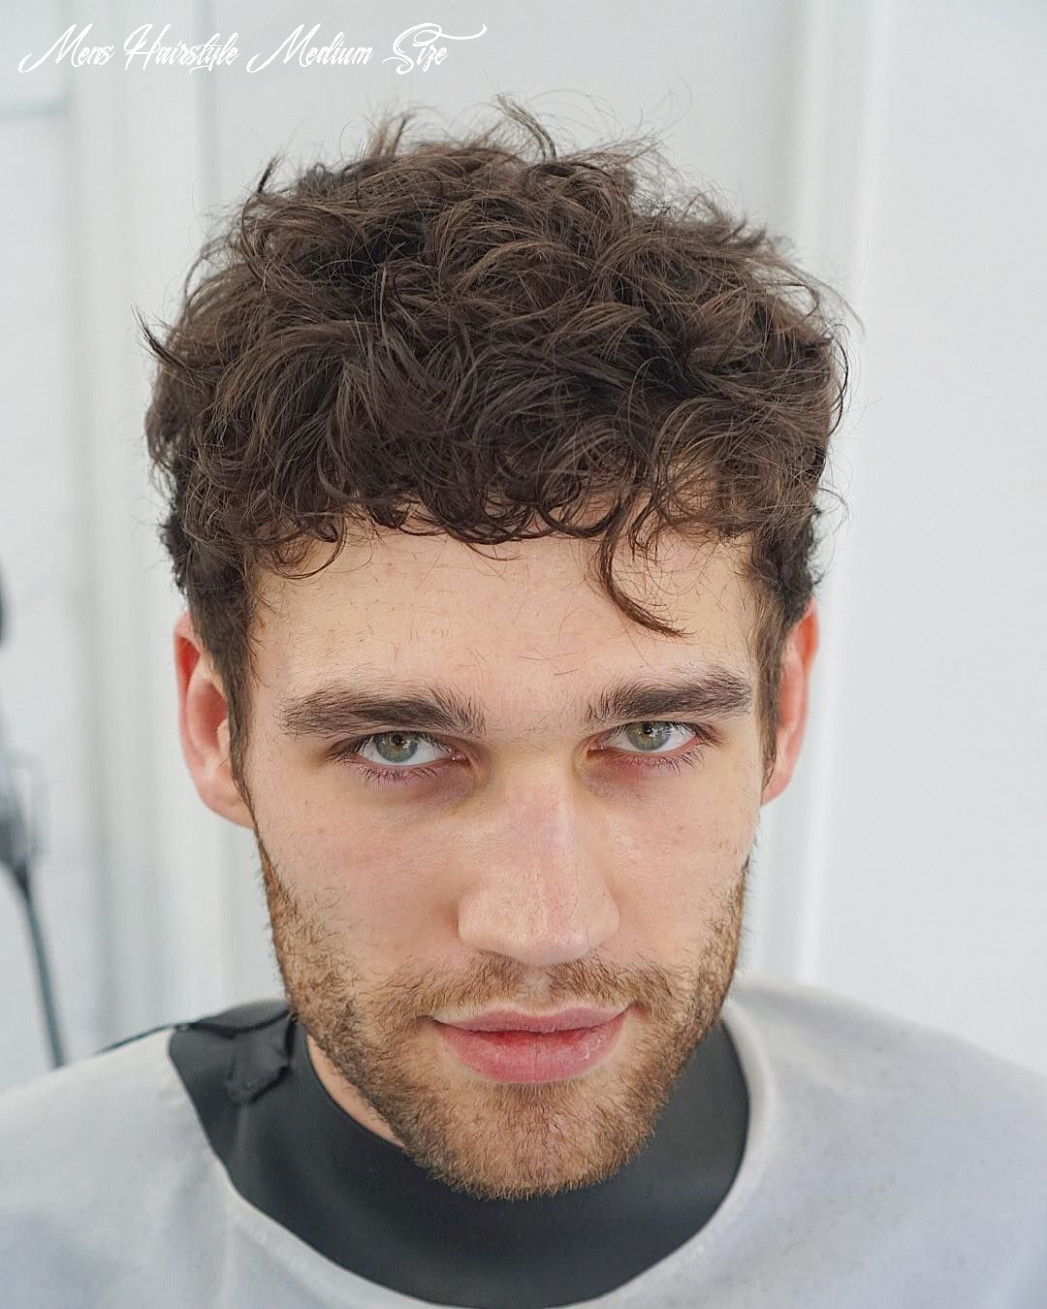 Medium length haircuts for men (9 styles)   haircuts for curly